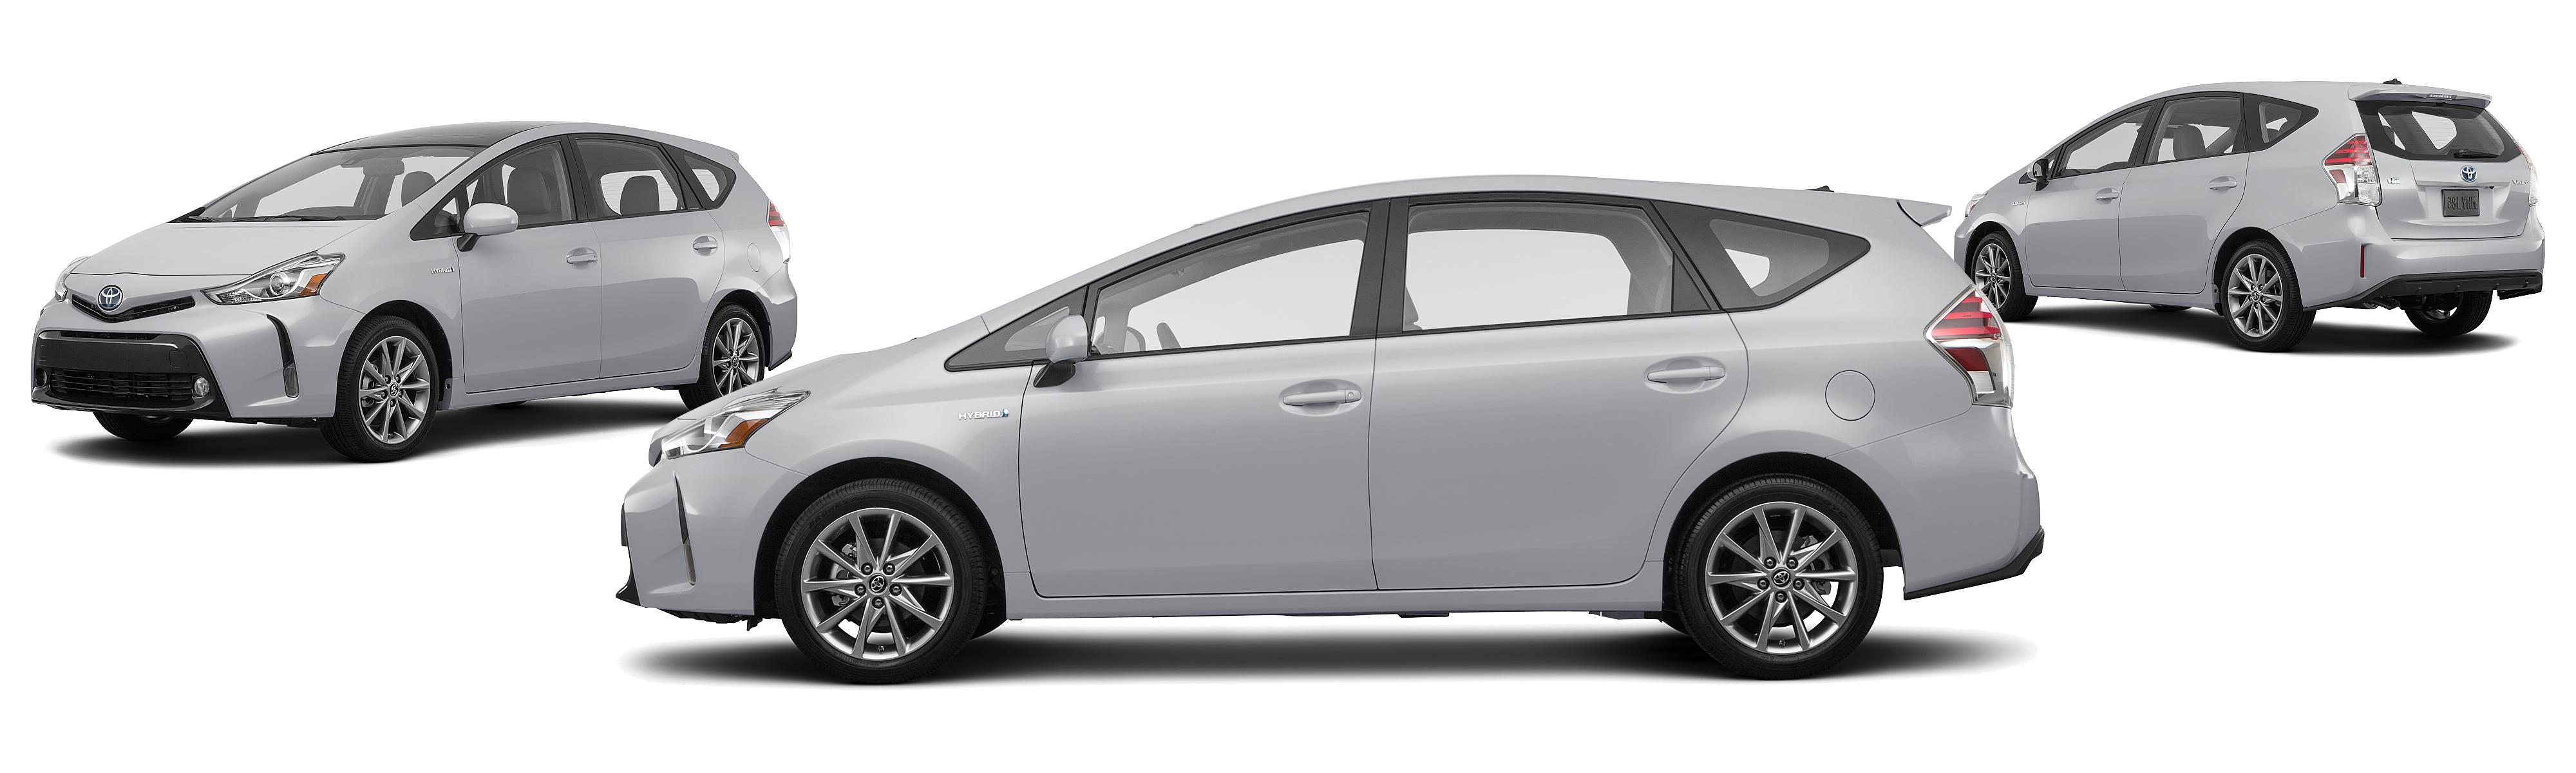 2015 toyota prius v wagon the wagon. Black Bedroom Furniture Sets. Home Design Ideas